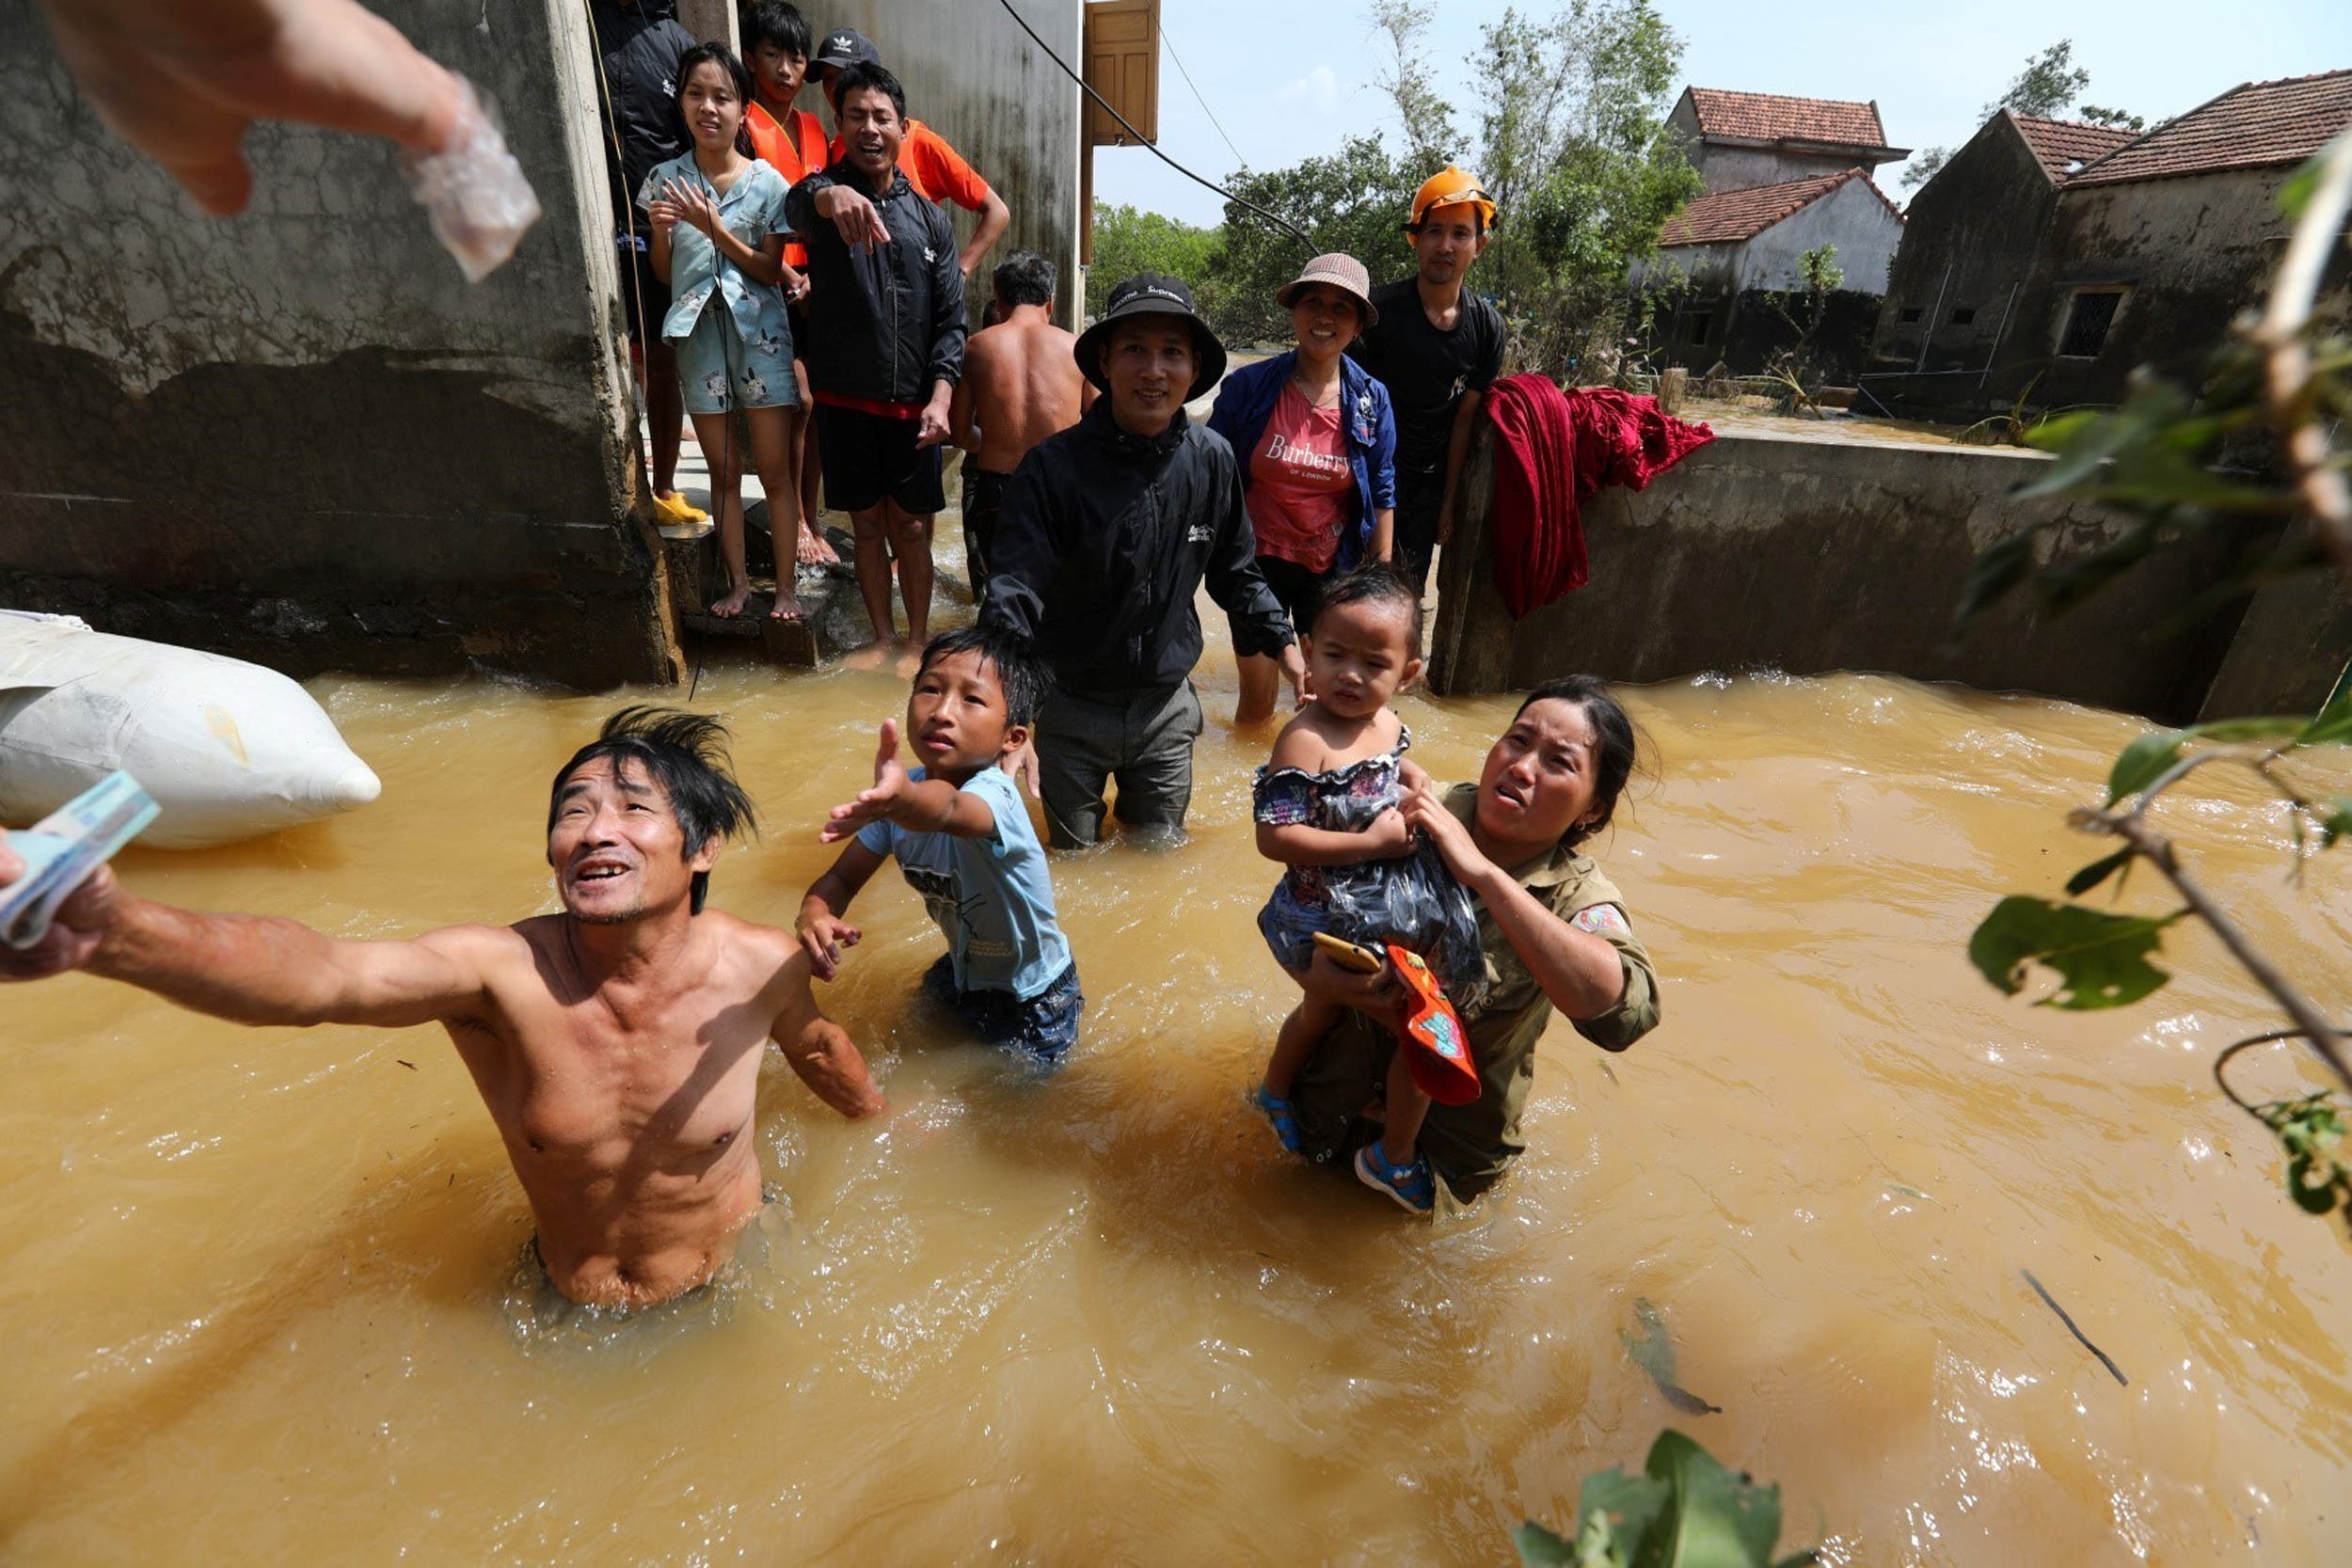 A resident gets money from a volunteer at a flooded area in Quang Binh province, Vietnam October 23, 2020. (Reuters)